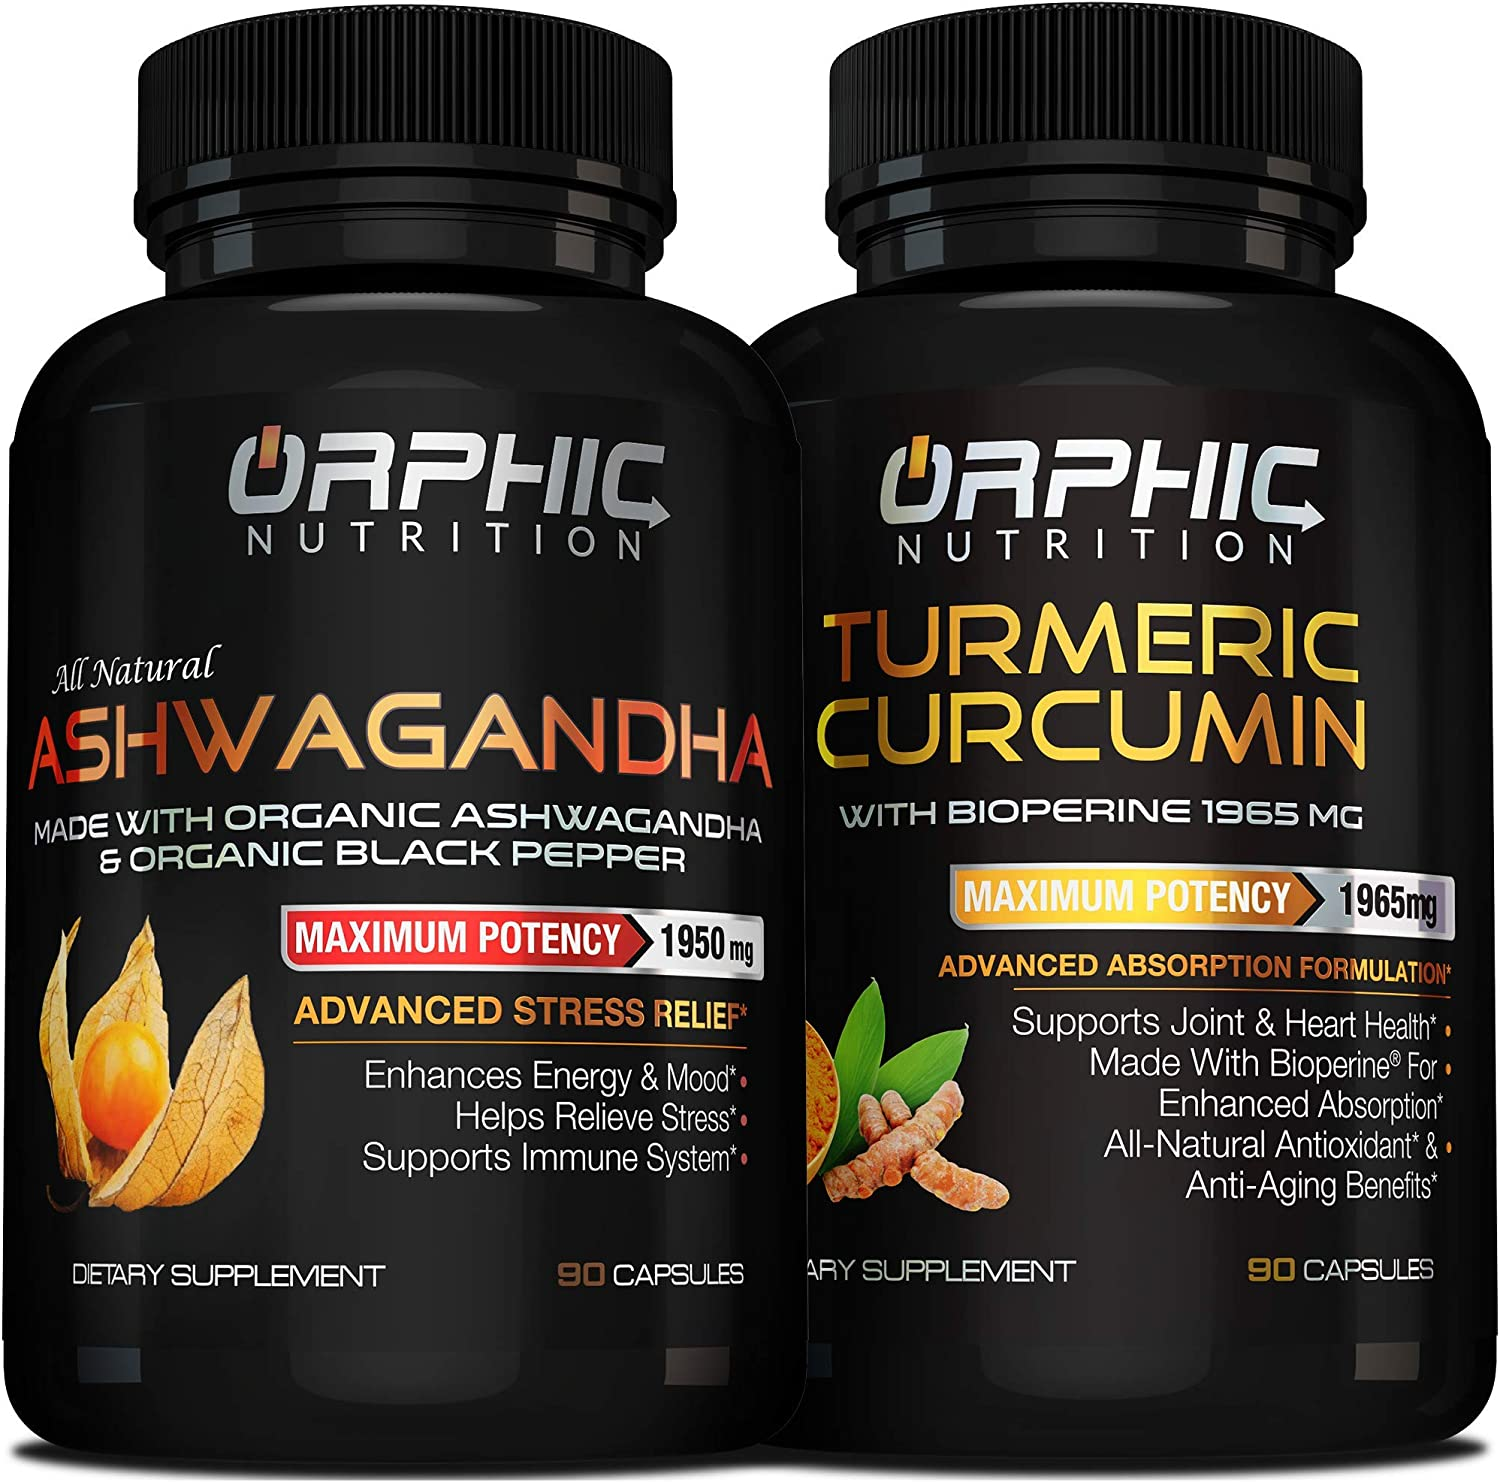 Organic Ashwagandha with Black Pepper and Turmeric Curcumin with Bioperine (90+90 caps) - Max Potency, Anti-Anxiety & Stress Relief - Anti-Aging, Joint and Heart Health Support - Boost Mood & Energy